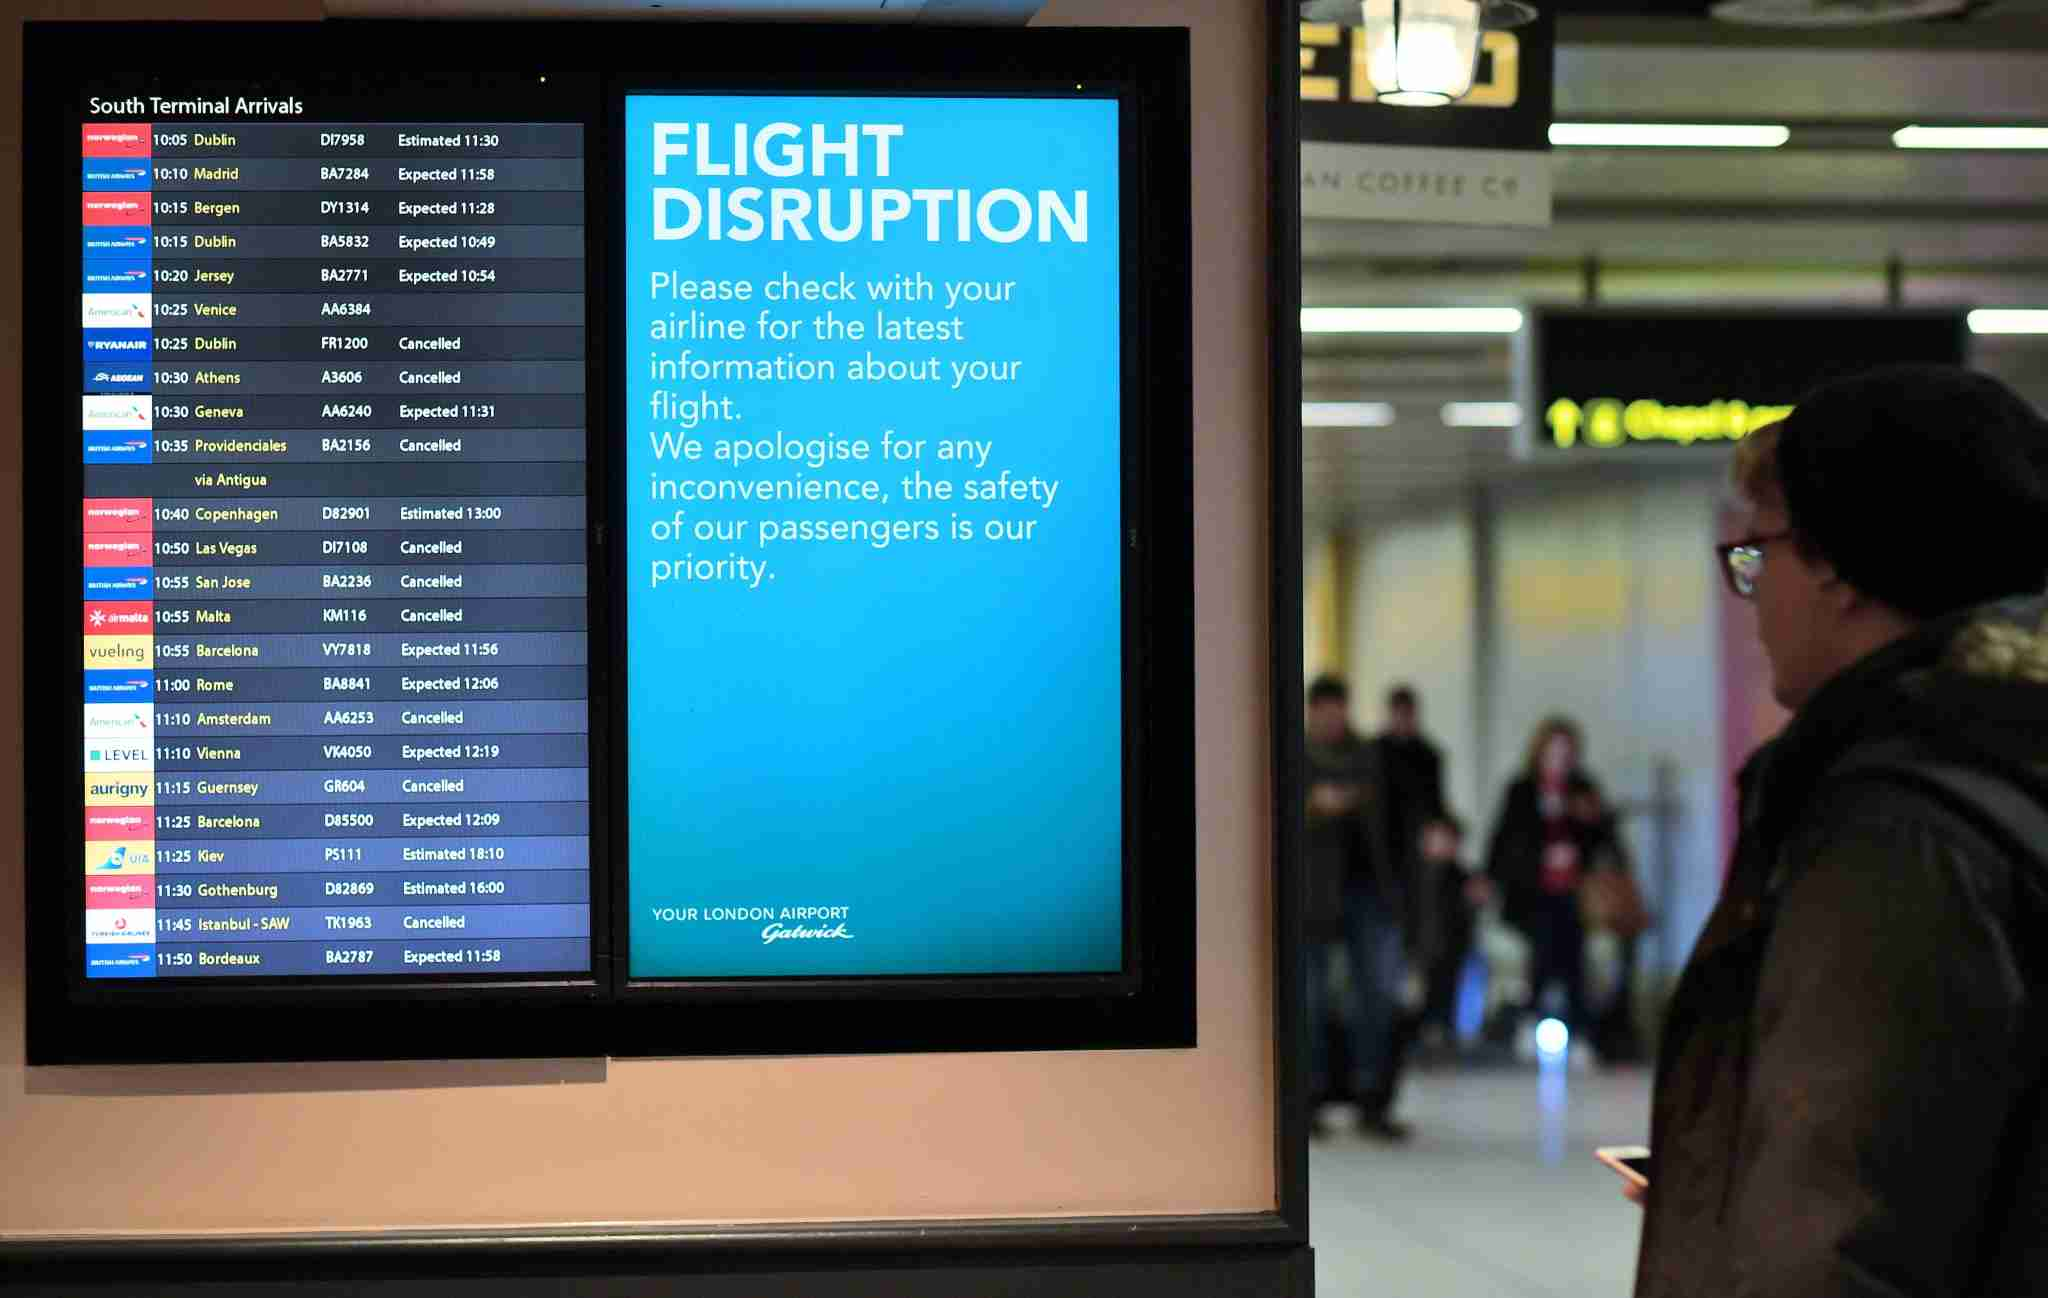 An information board displays flight information follwing disruption, in the South Terminal building at London Gatwick Airport, south of London, on December 21, 2018, as flights started to resume following the closing of the airfield due to a drones flying. - British police were Friday considering shooting down the drone that has grounded flights and caused chaos at London